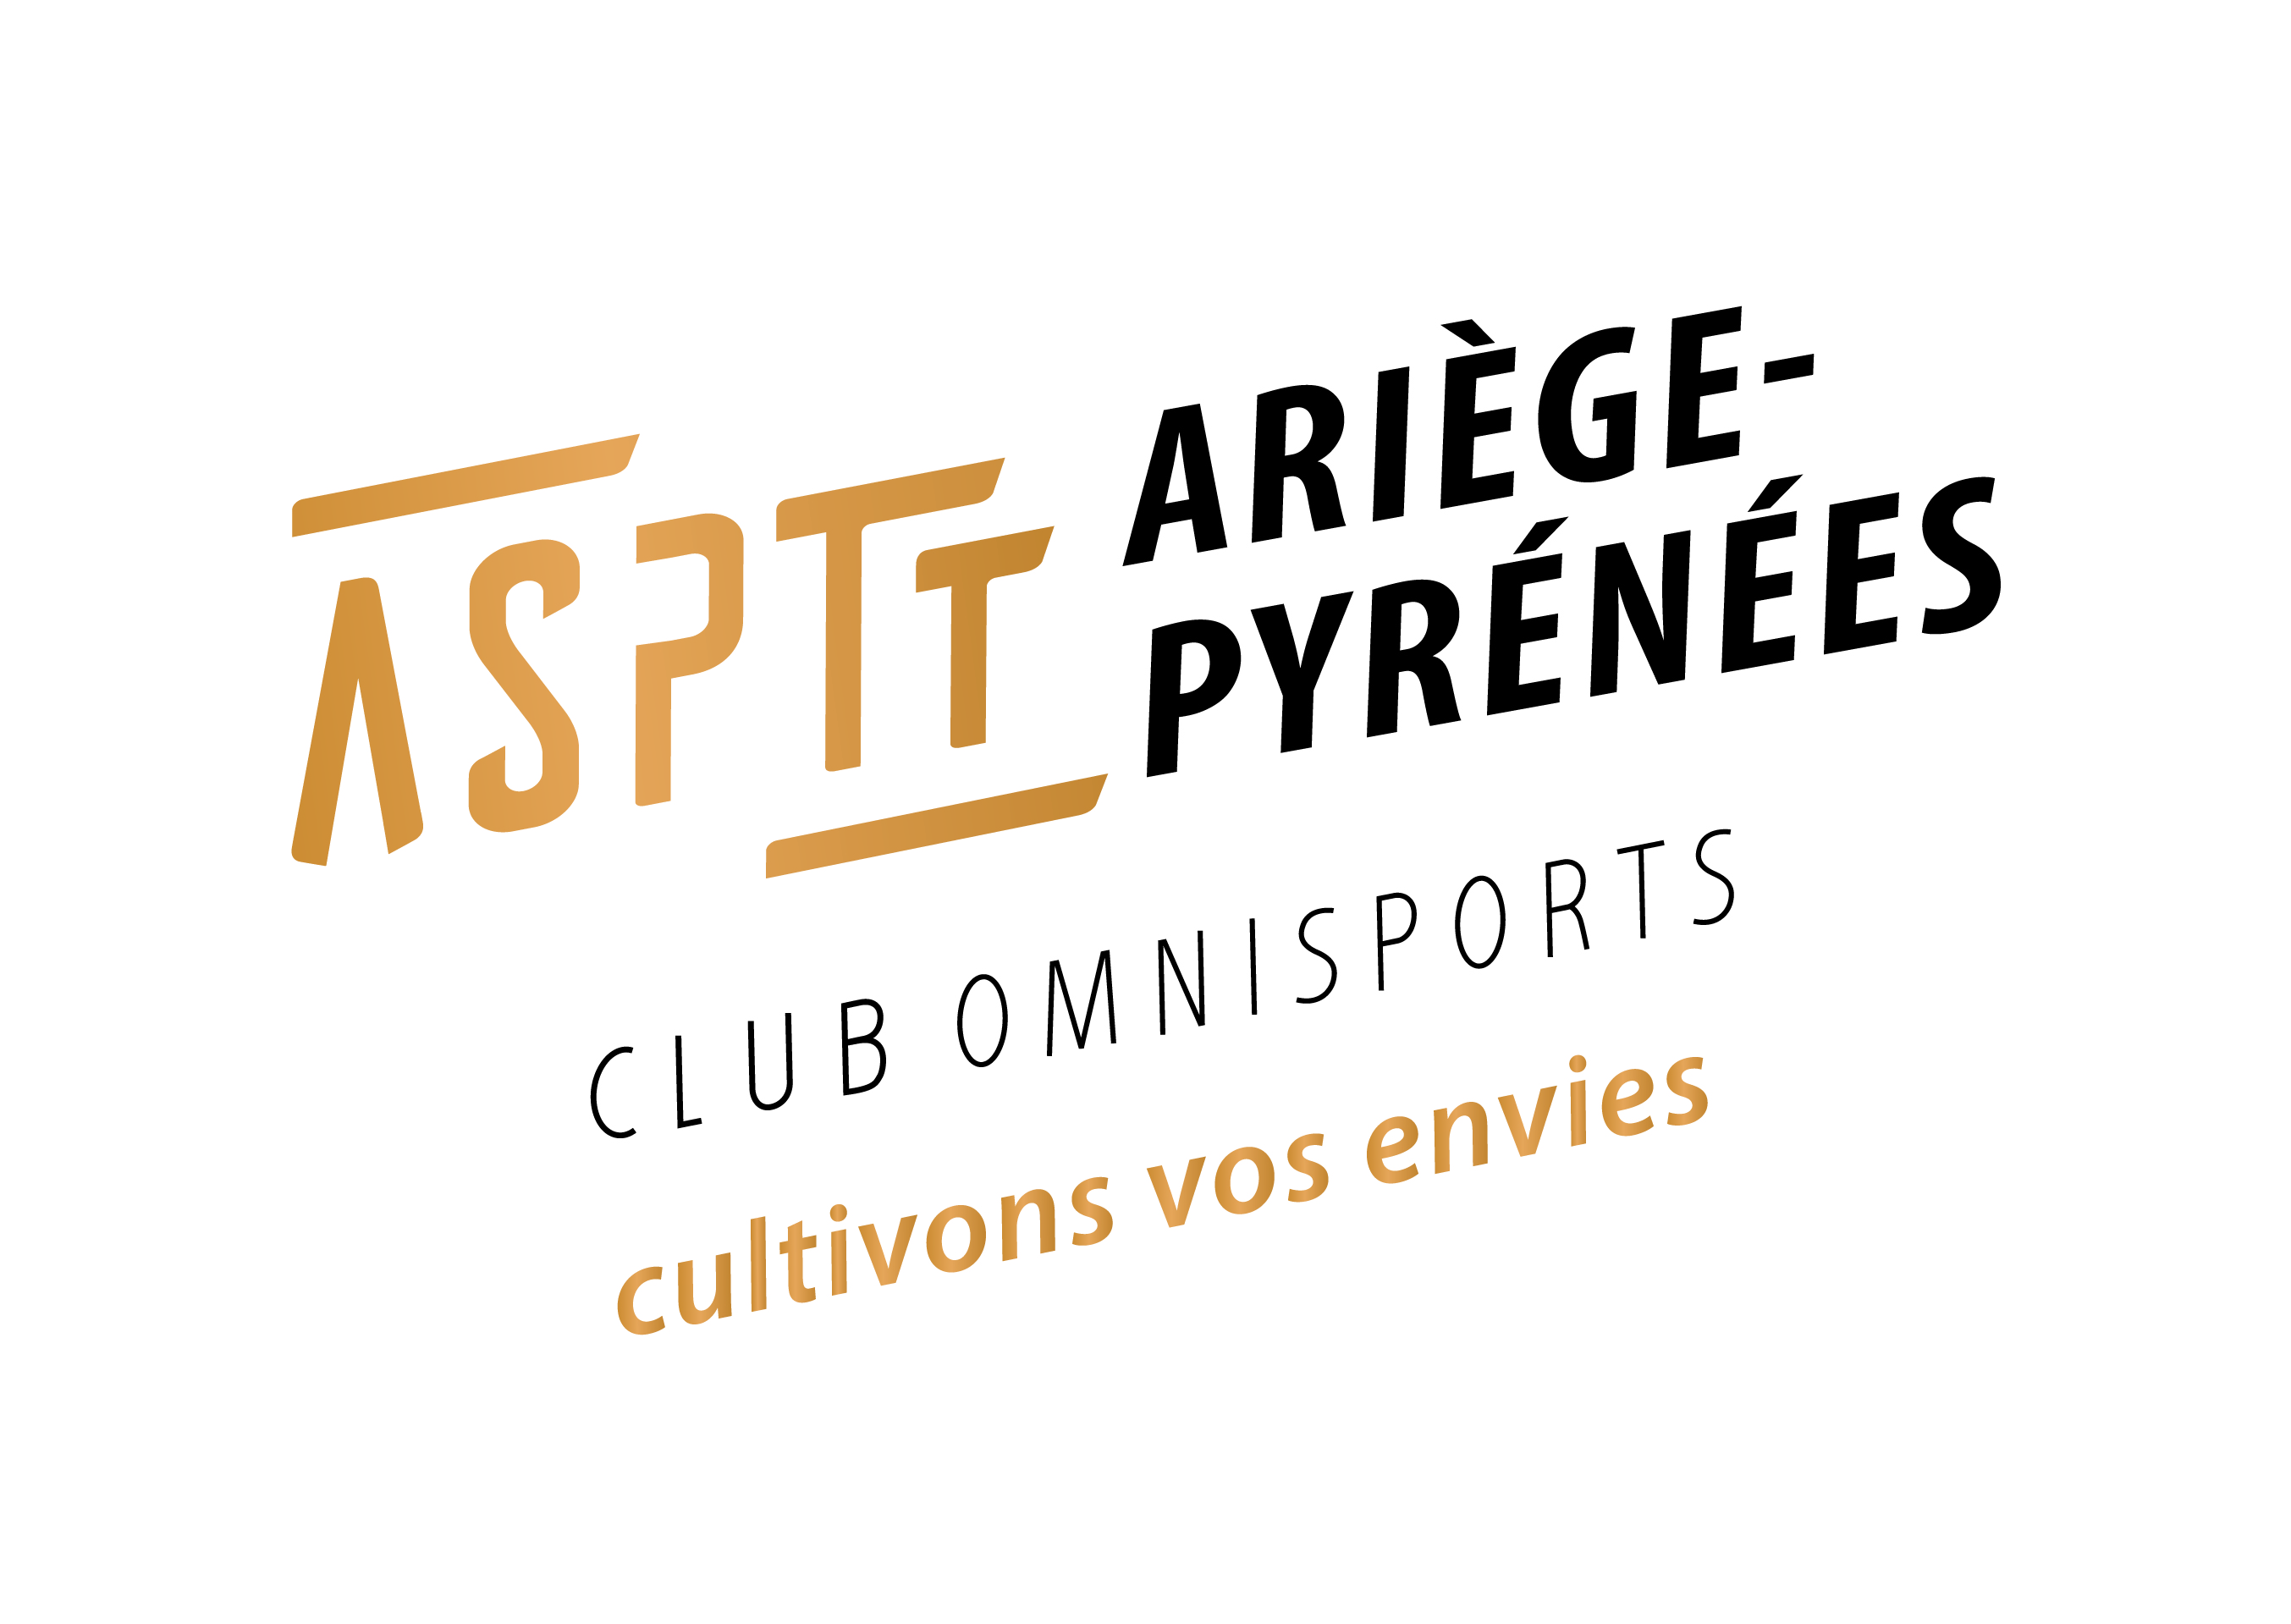 1 CLUB OMNISPORTS OUVERT A TOUS